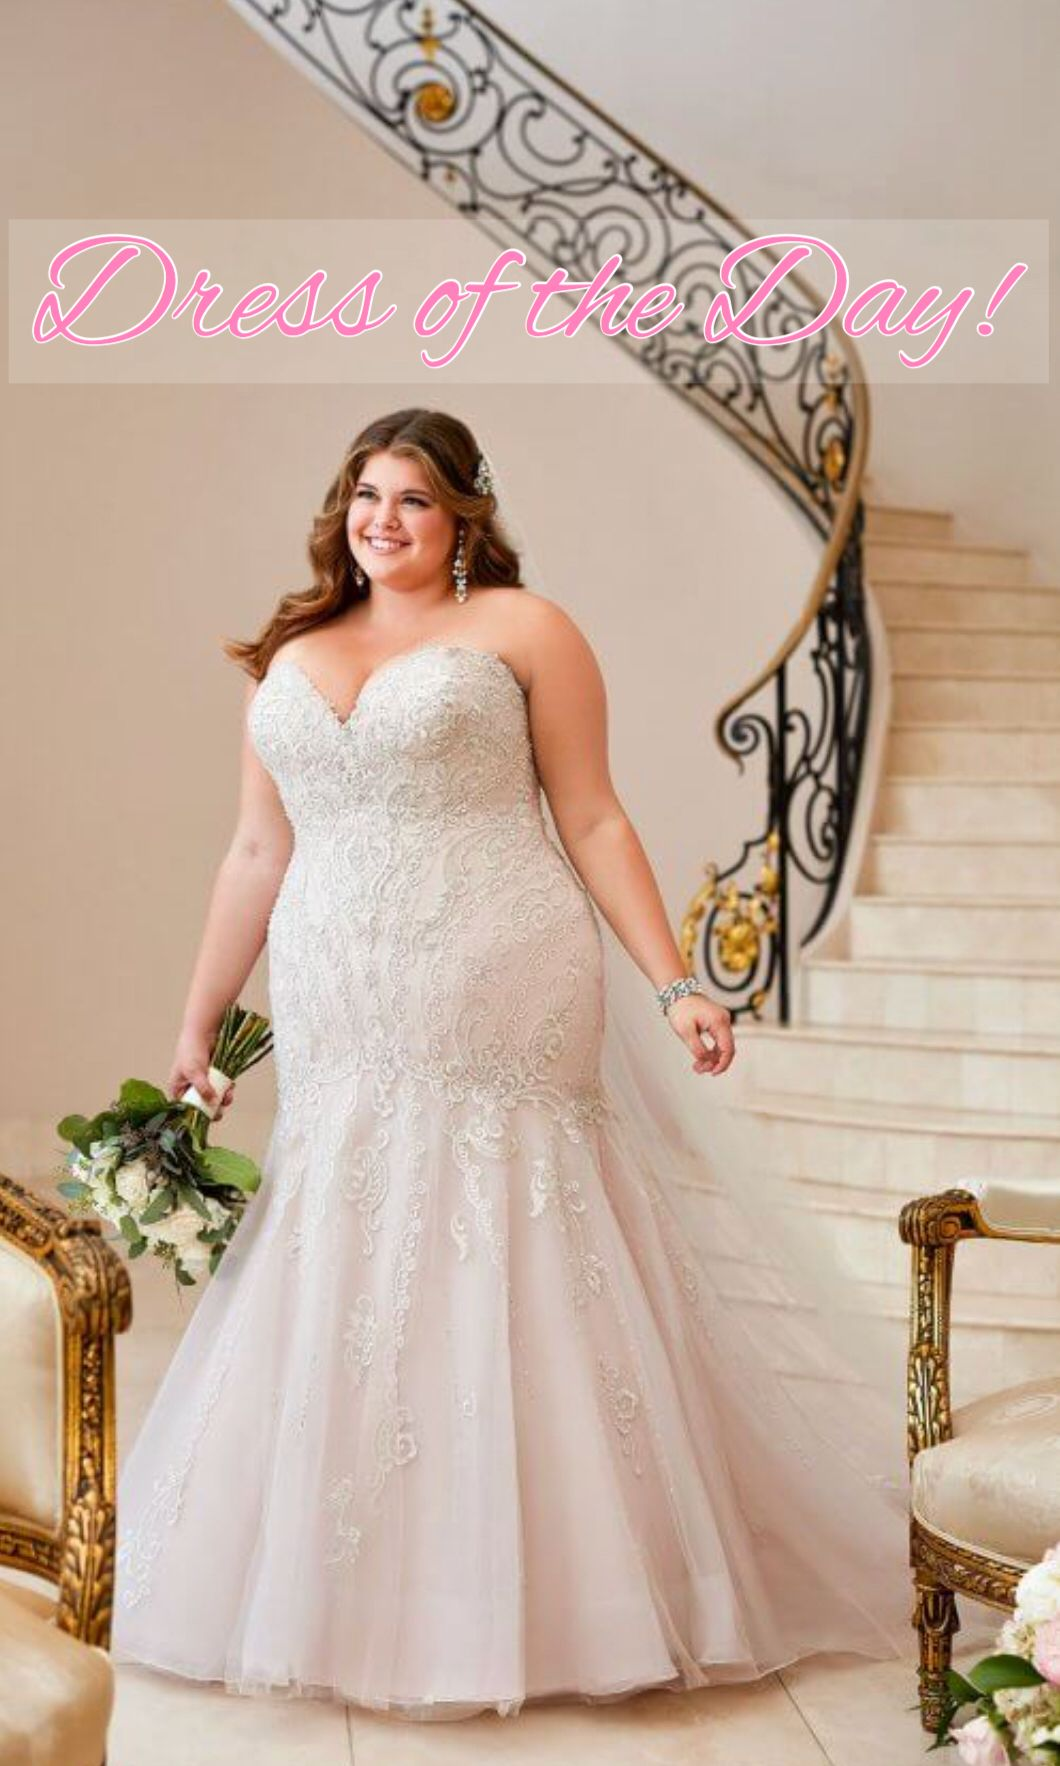 Dress of the day exclusively at molle bridals in a stunning